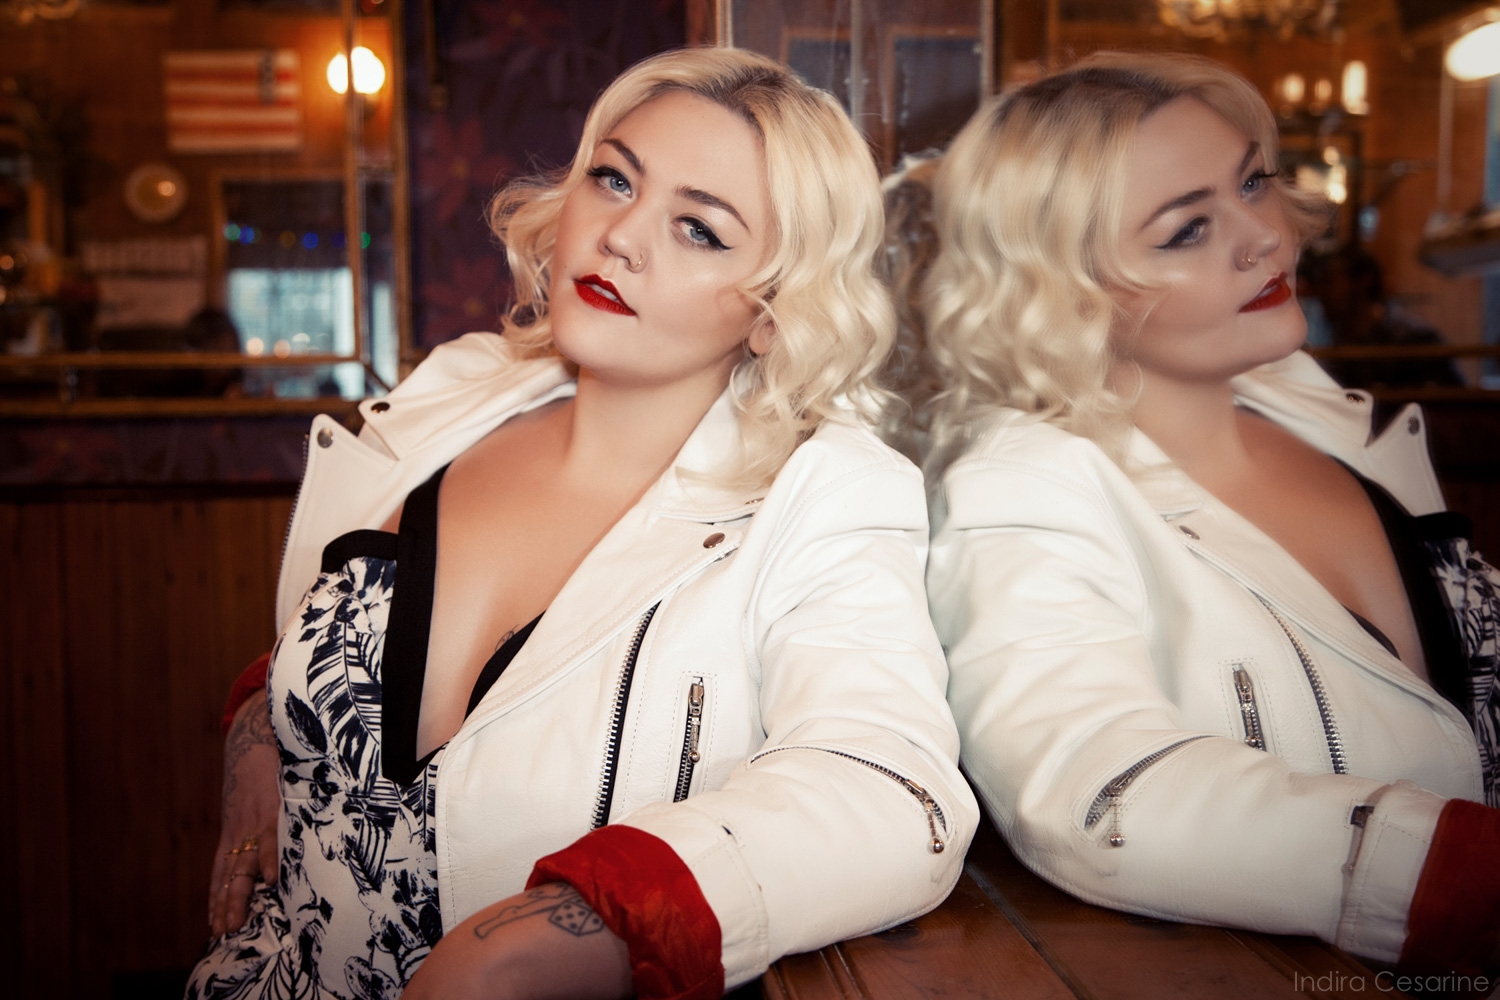 Elle-King-Photography-by-Indira-Cesarine-009.jpg